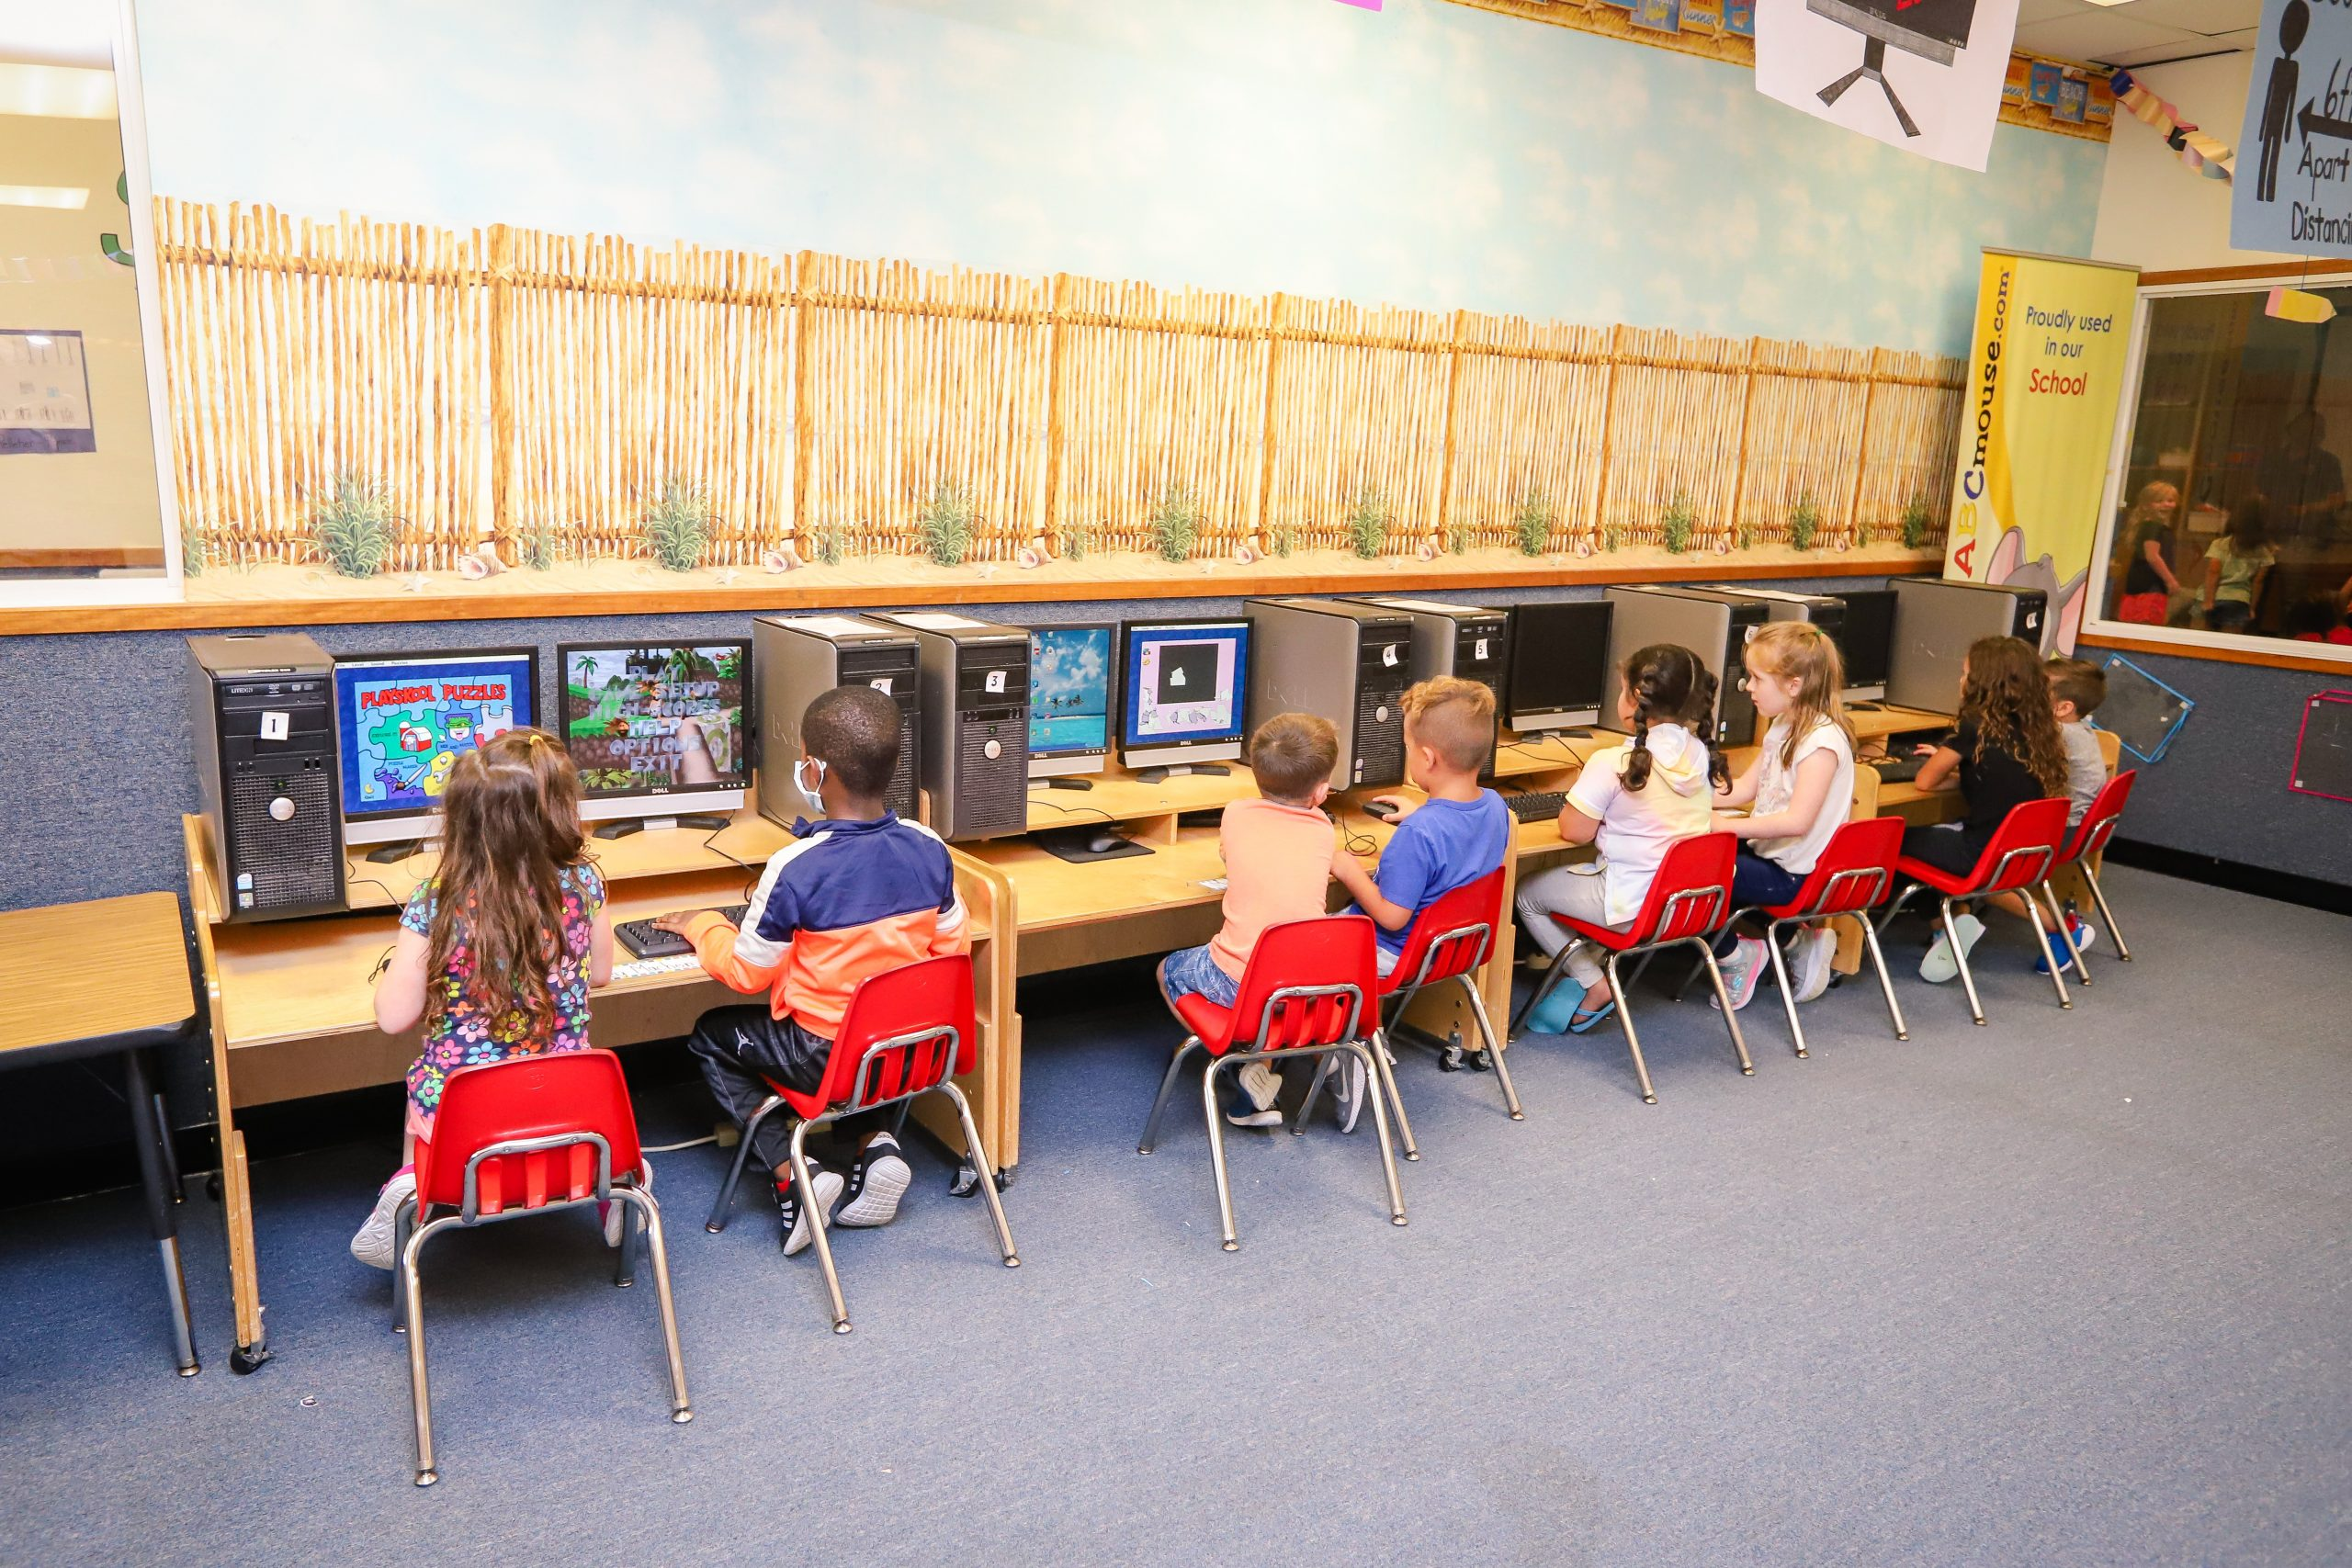 Our modern childcare facilities include fun and safe environments to use computers